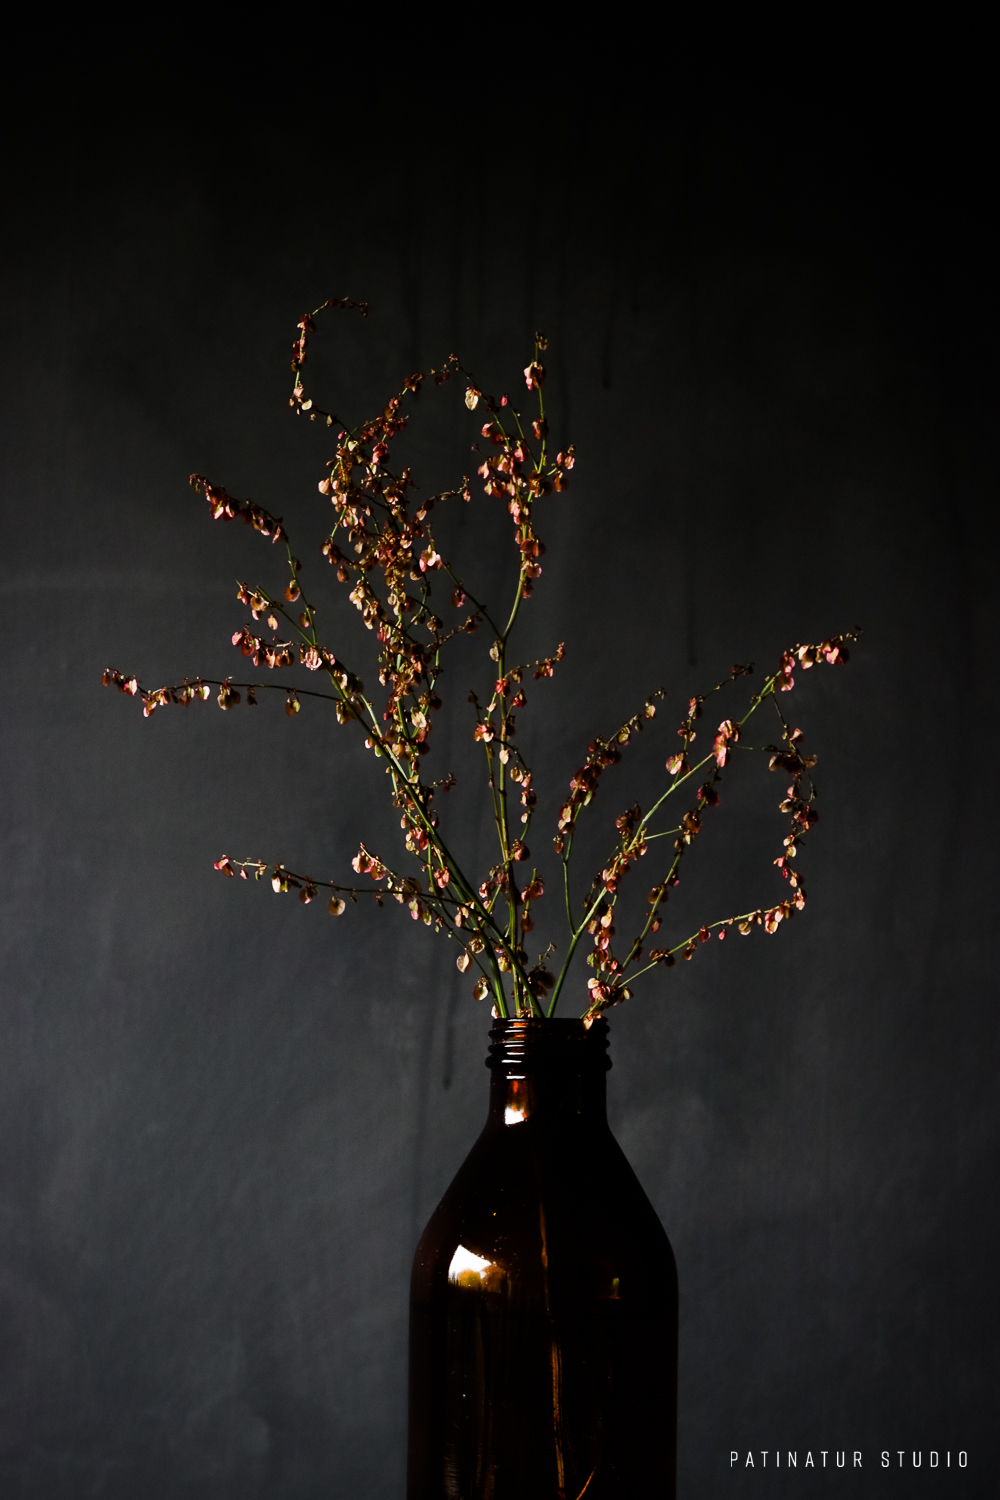 Photo art | Dark and moody still life with weed in brown glass bottle